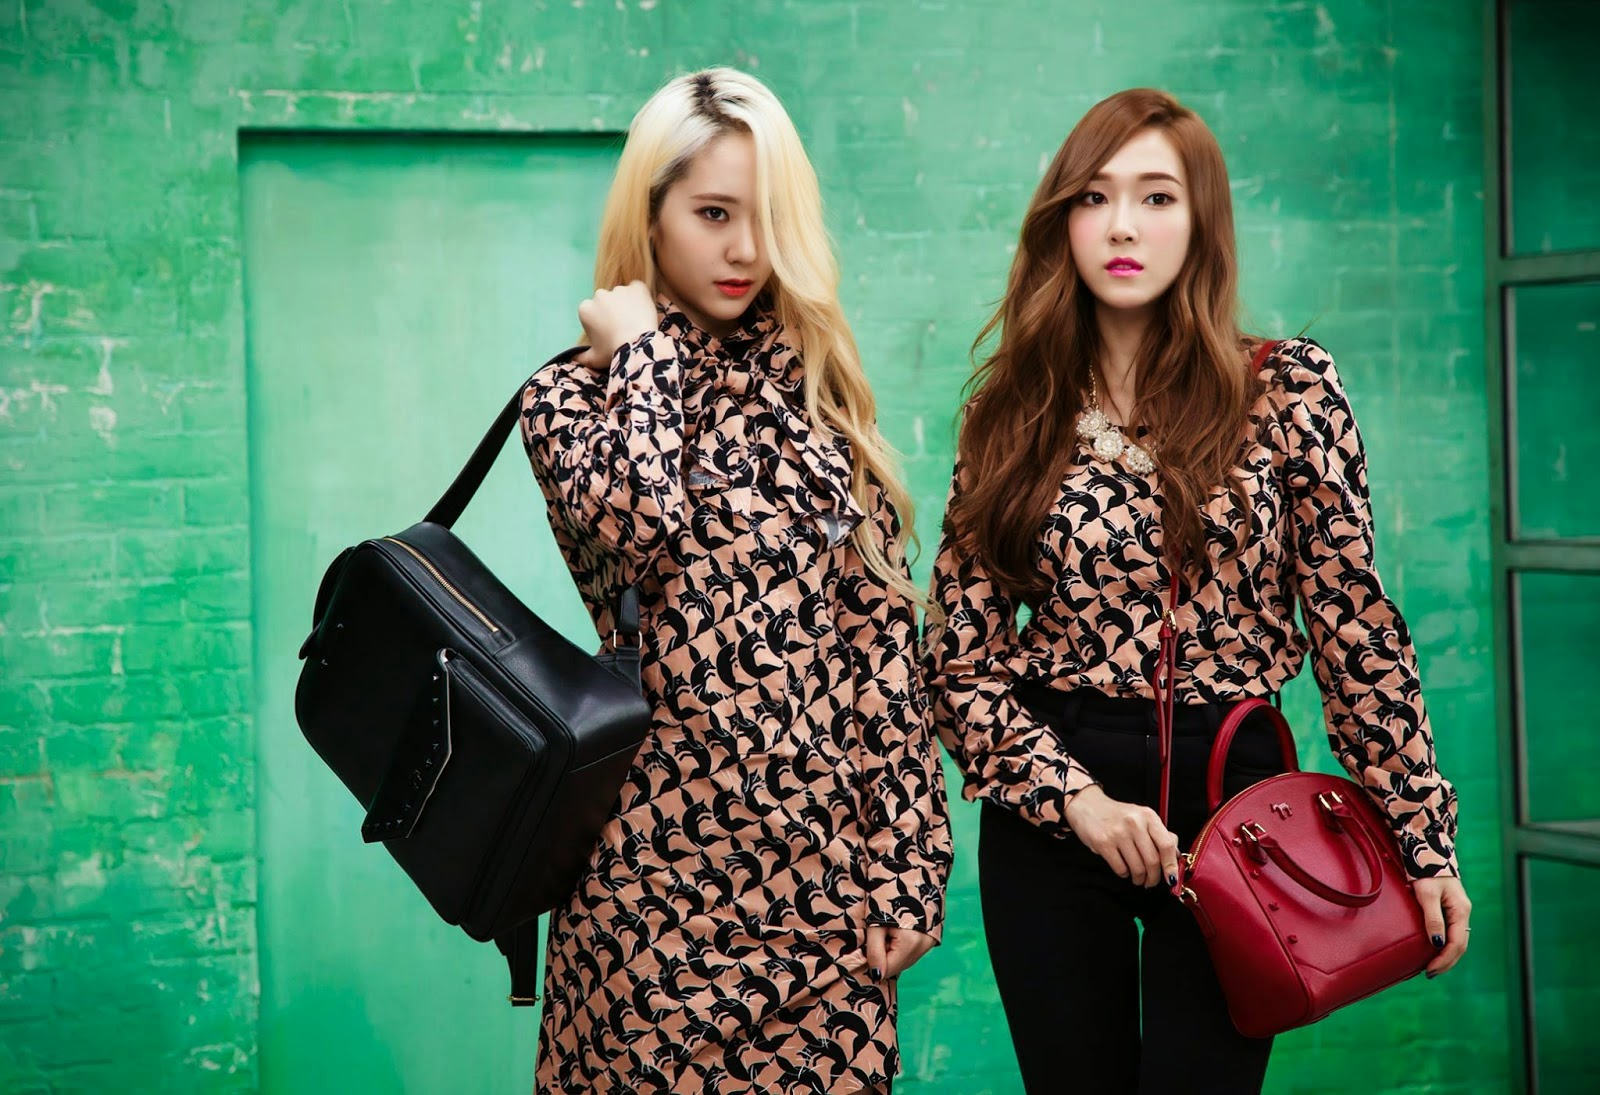 My SNSD: [PHOTOS] 140813 Jessica and Krystal for Lapalette F(x) Krystal And Jessica